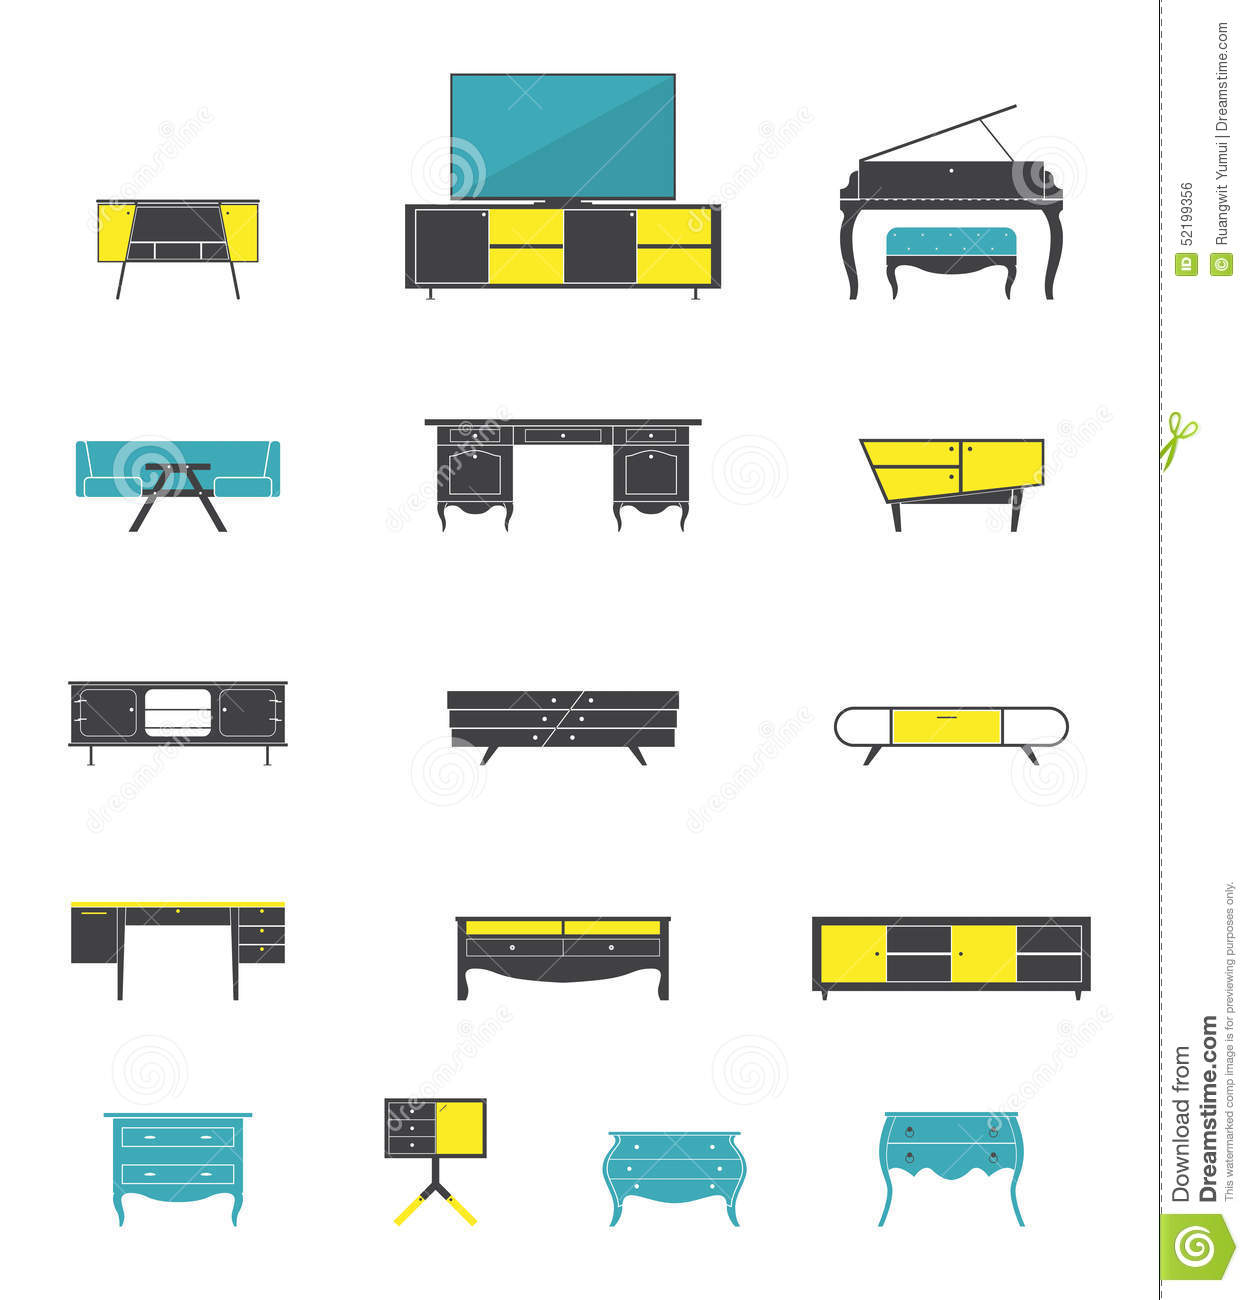 Flat Design Interior Dining Room Vector Illustration Stock: Icon Set Of Home And Office Furniture Interior In Flat